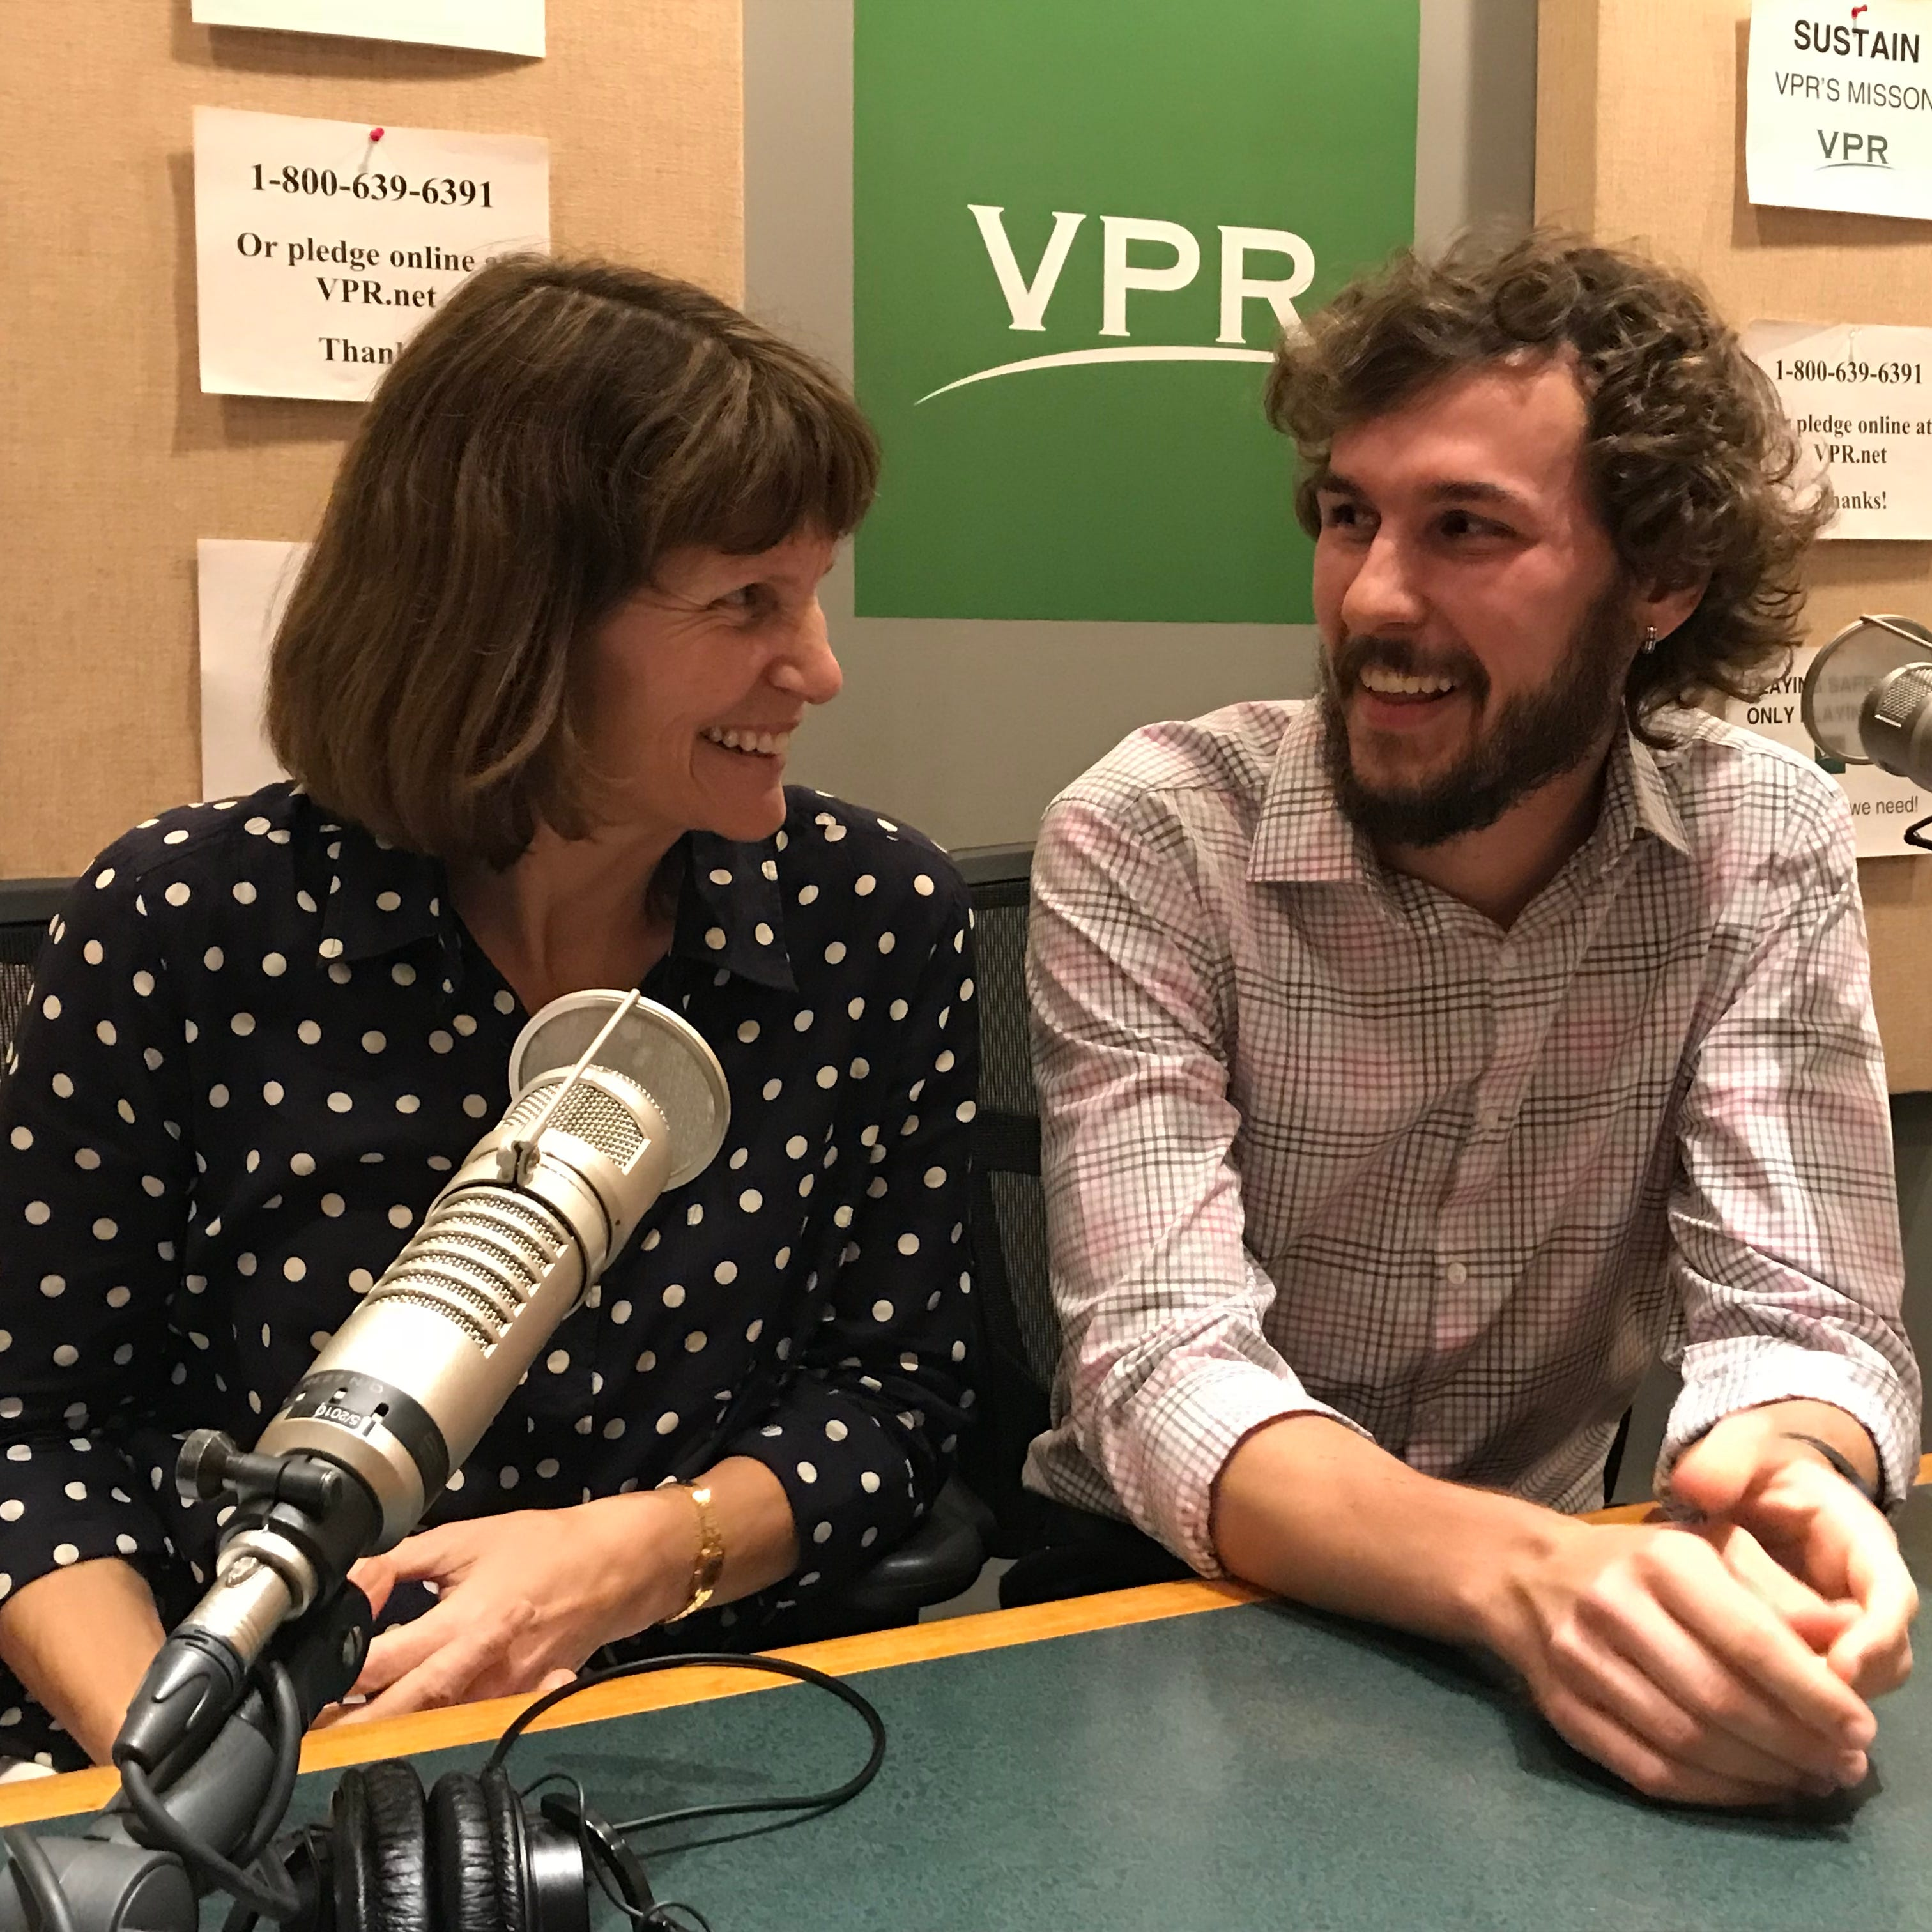 Vermont Public Radio's 'Jolted' podcast peers into family struggle behind thwarted shooting